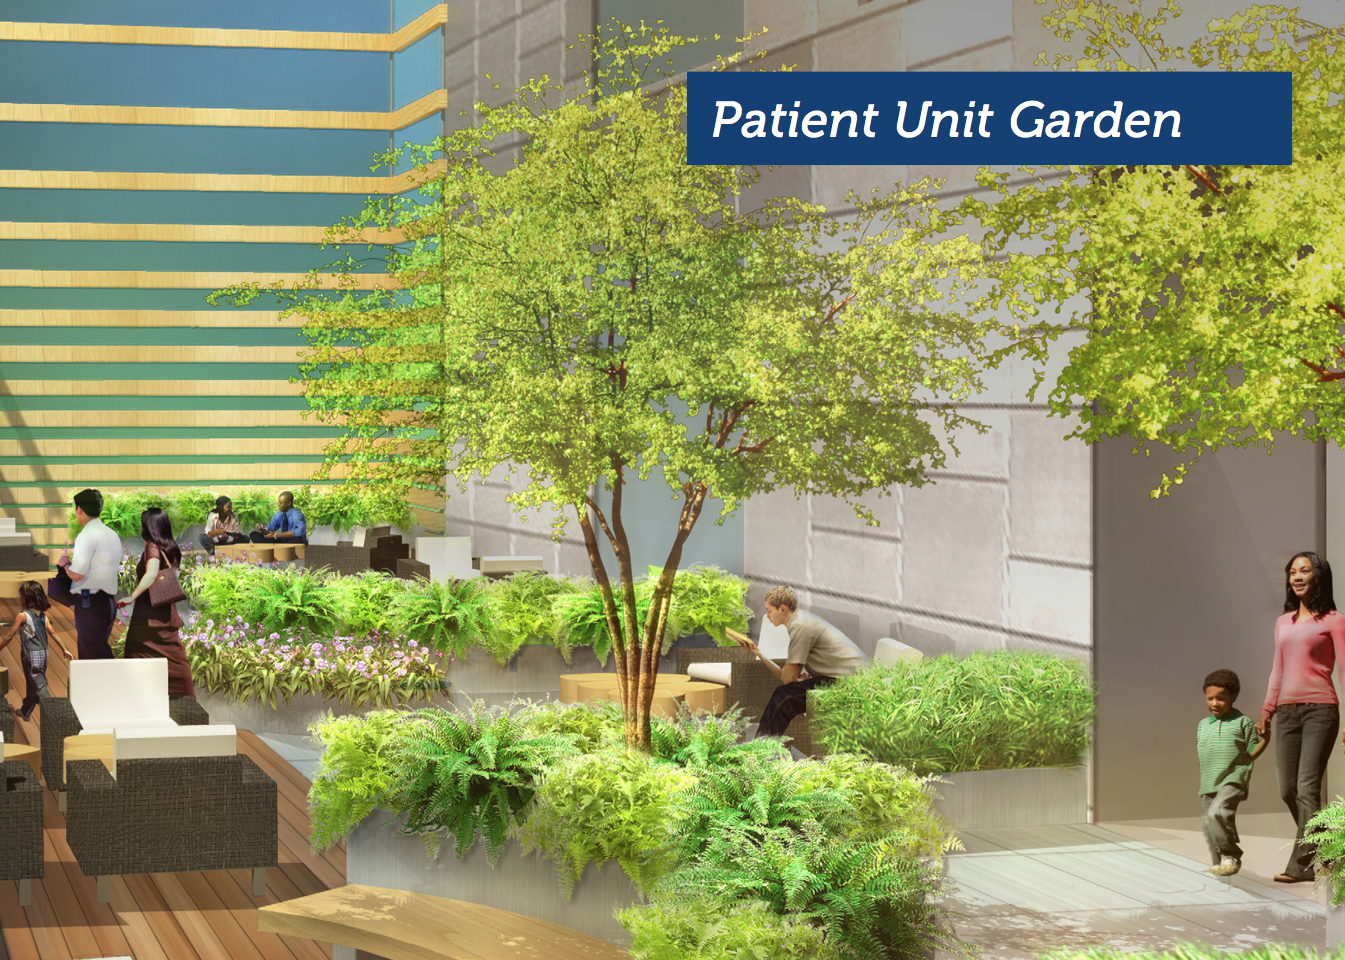 boston children's hospital's $1b expansion gets final approval